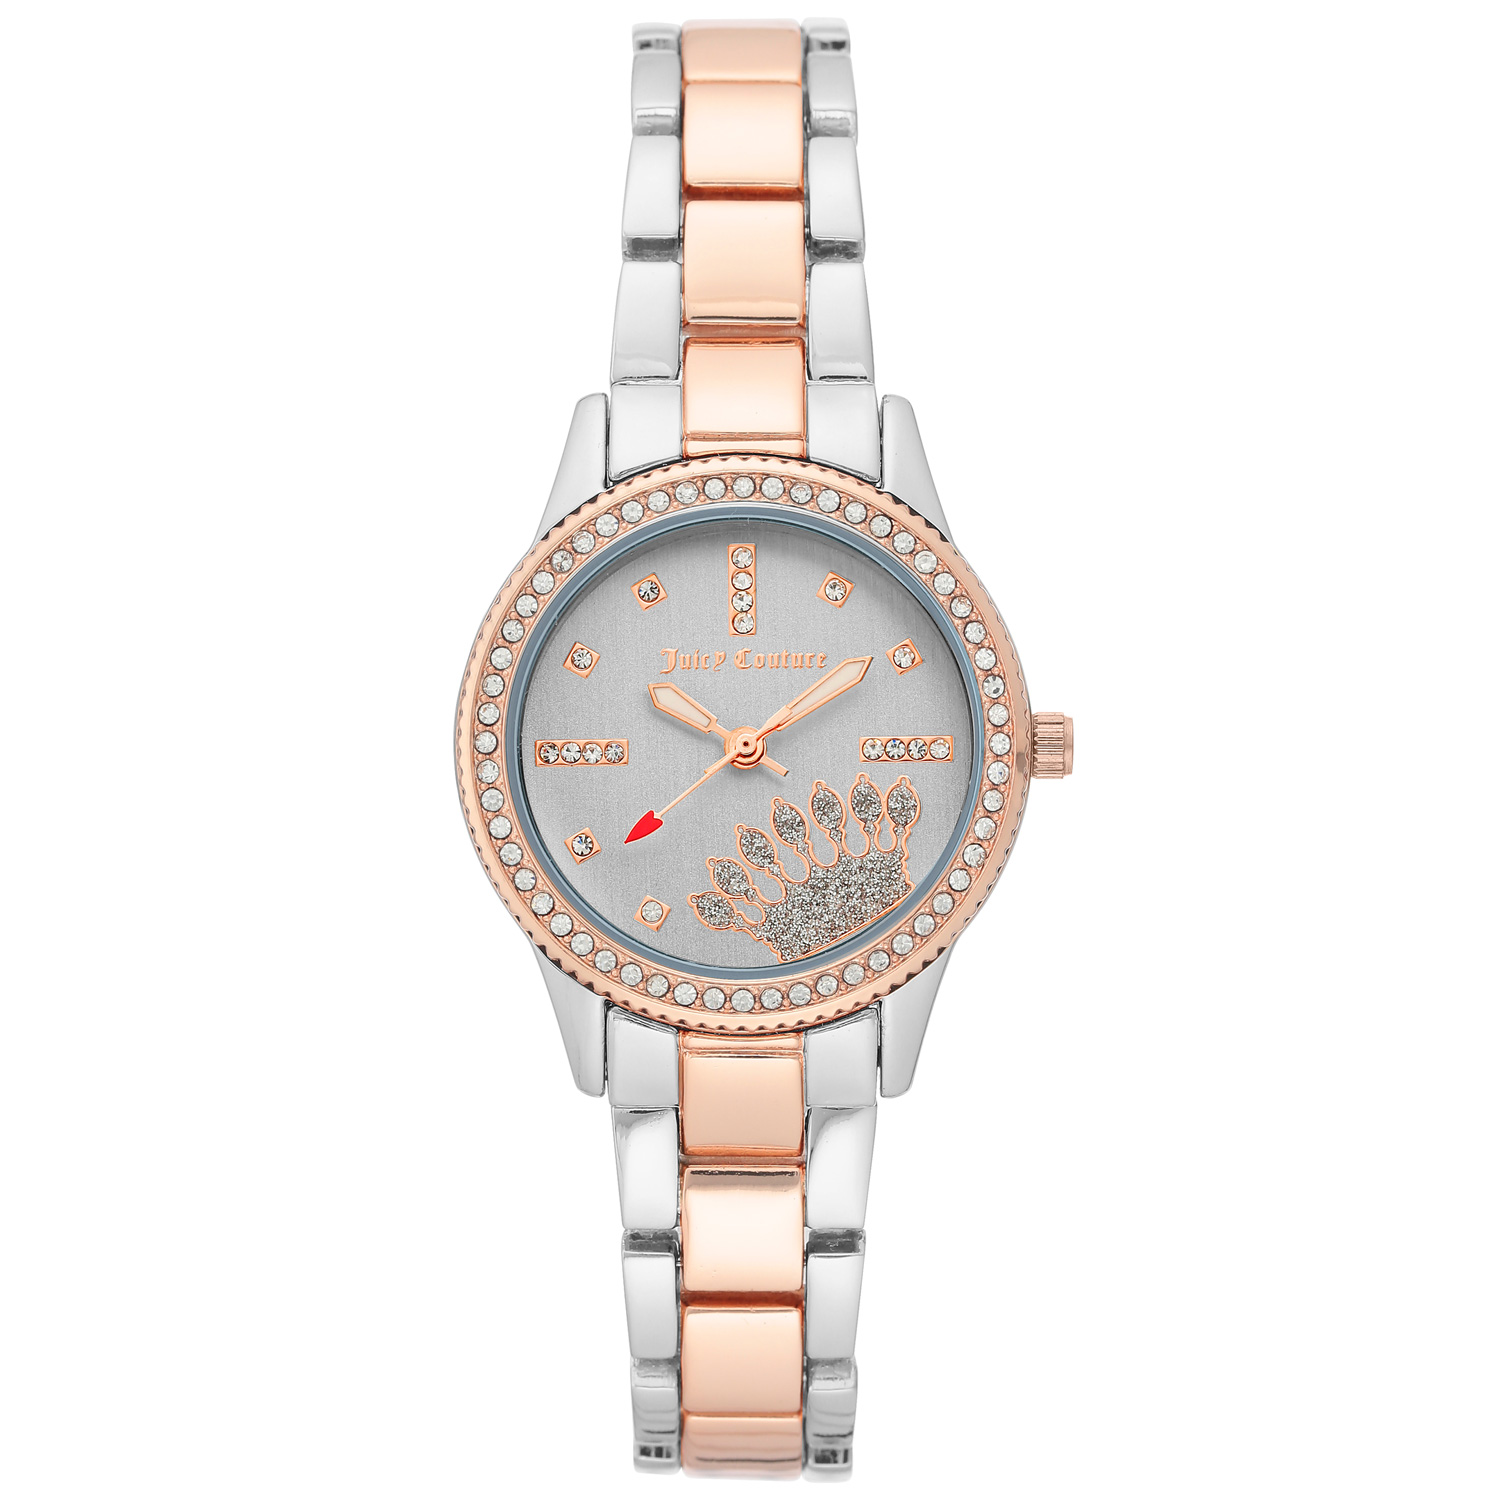 Juicy Couture Watch JC/1110SVRT Rose Gold